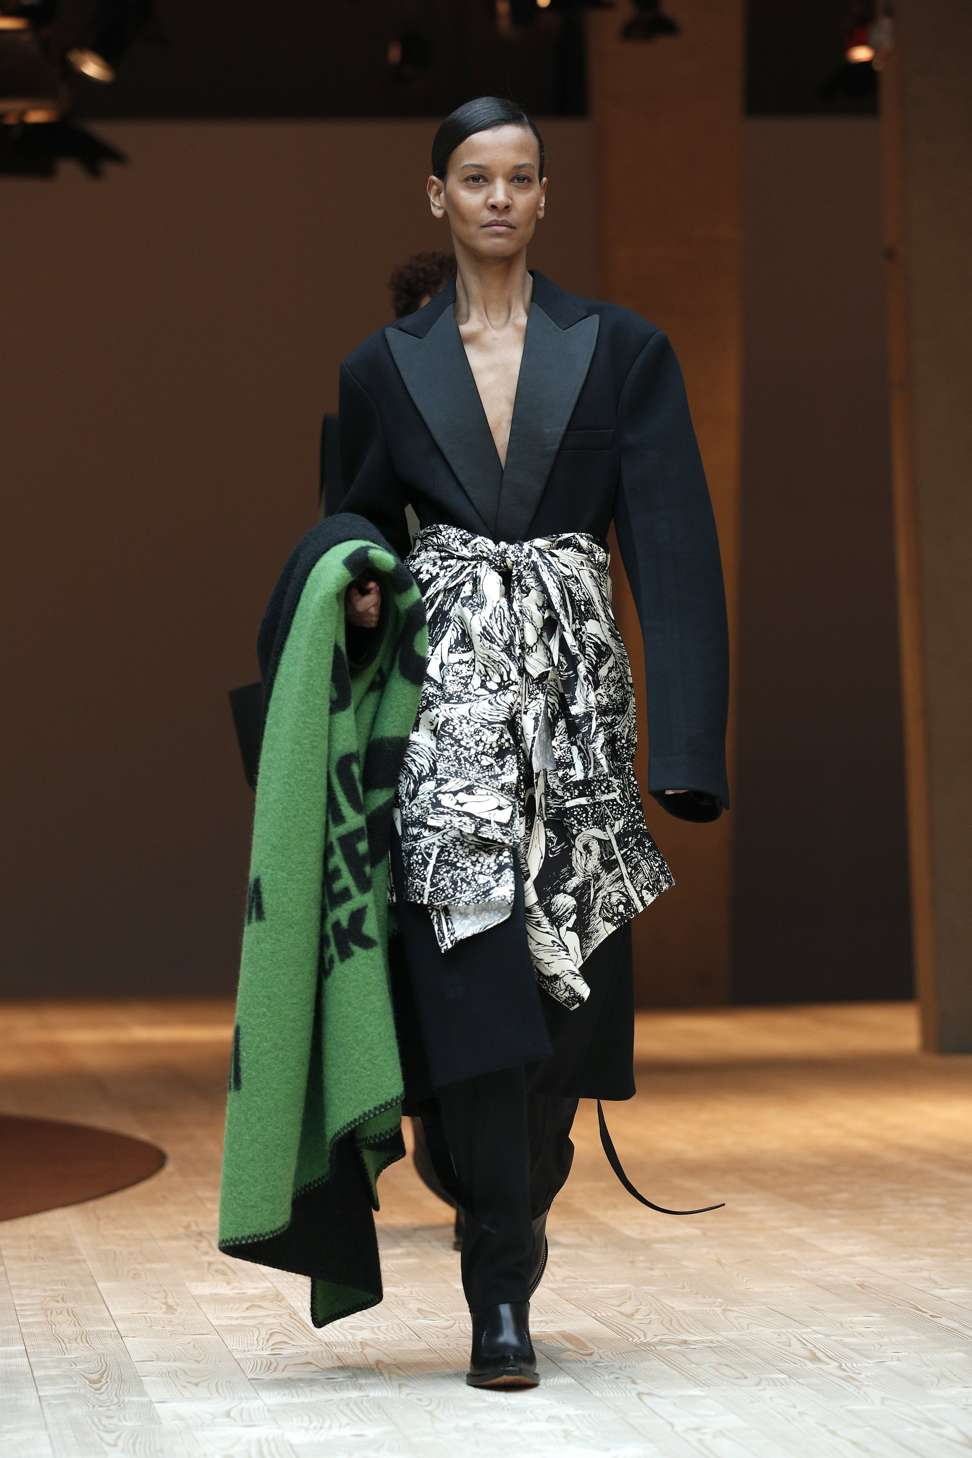 celine fashion designer kcdv  Celine's autumn-winter 2017 collection at Paris Fashion Week Photo: EPA